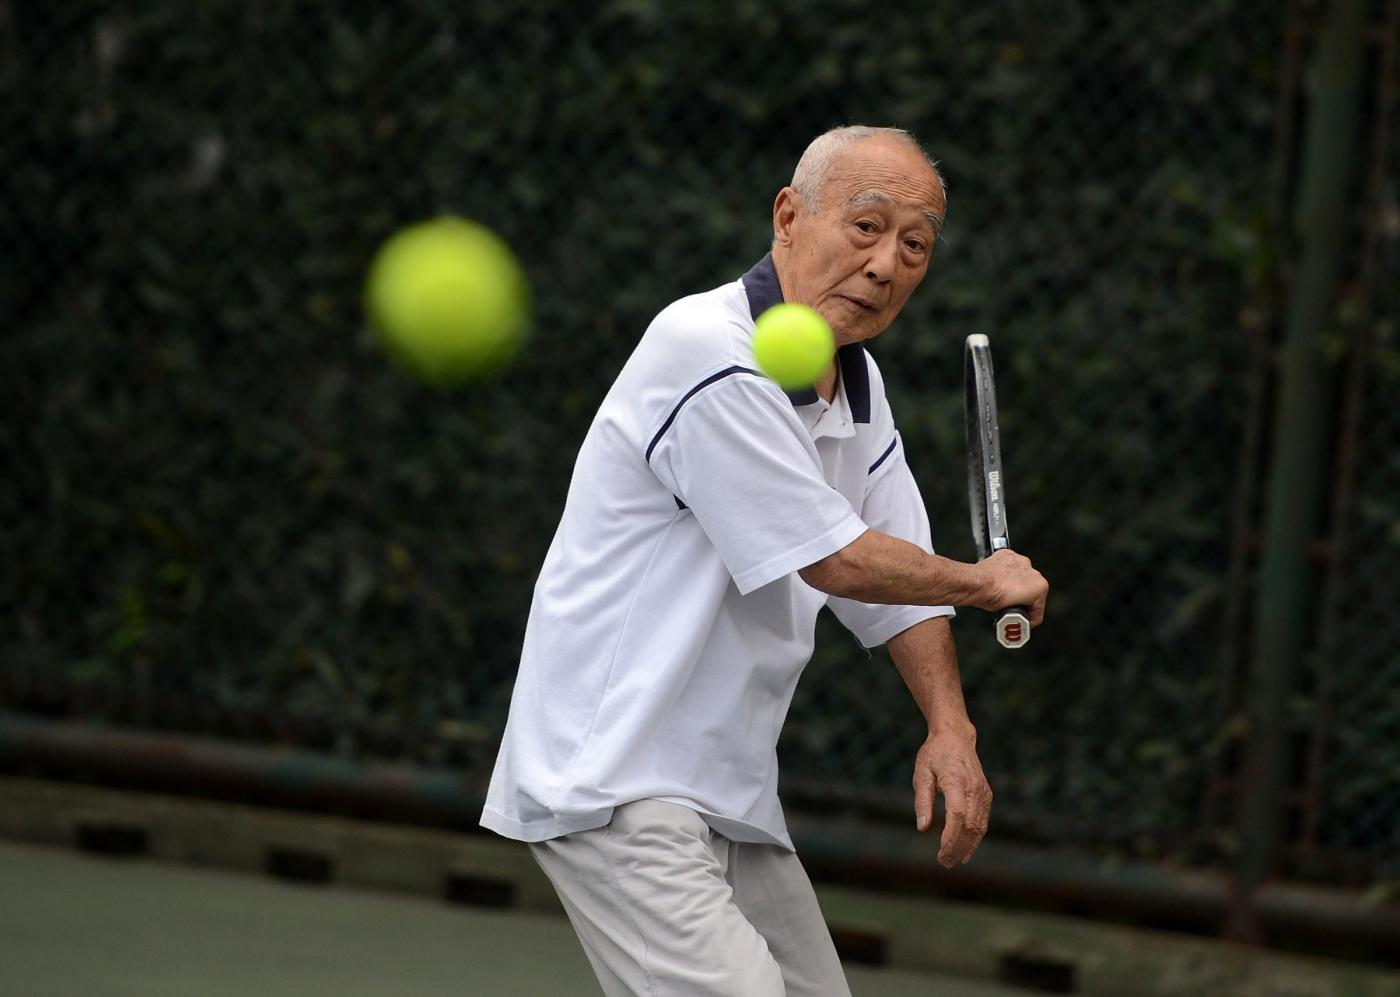 Huang Xingqiao, 99 anni,candidato a guinness world record 04